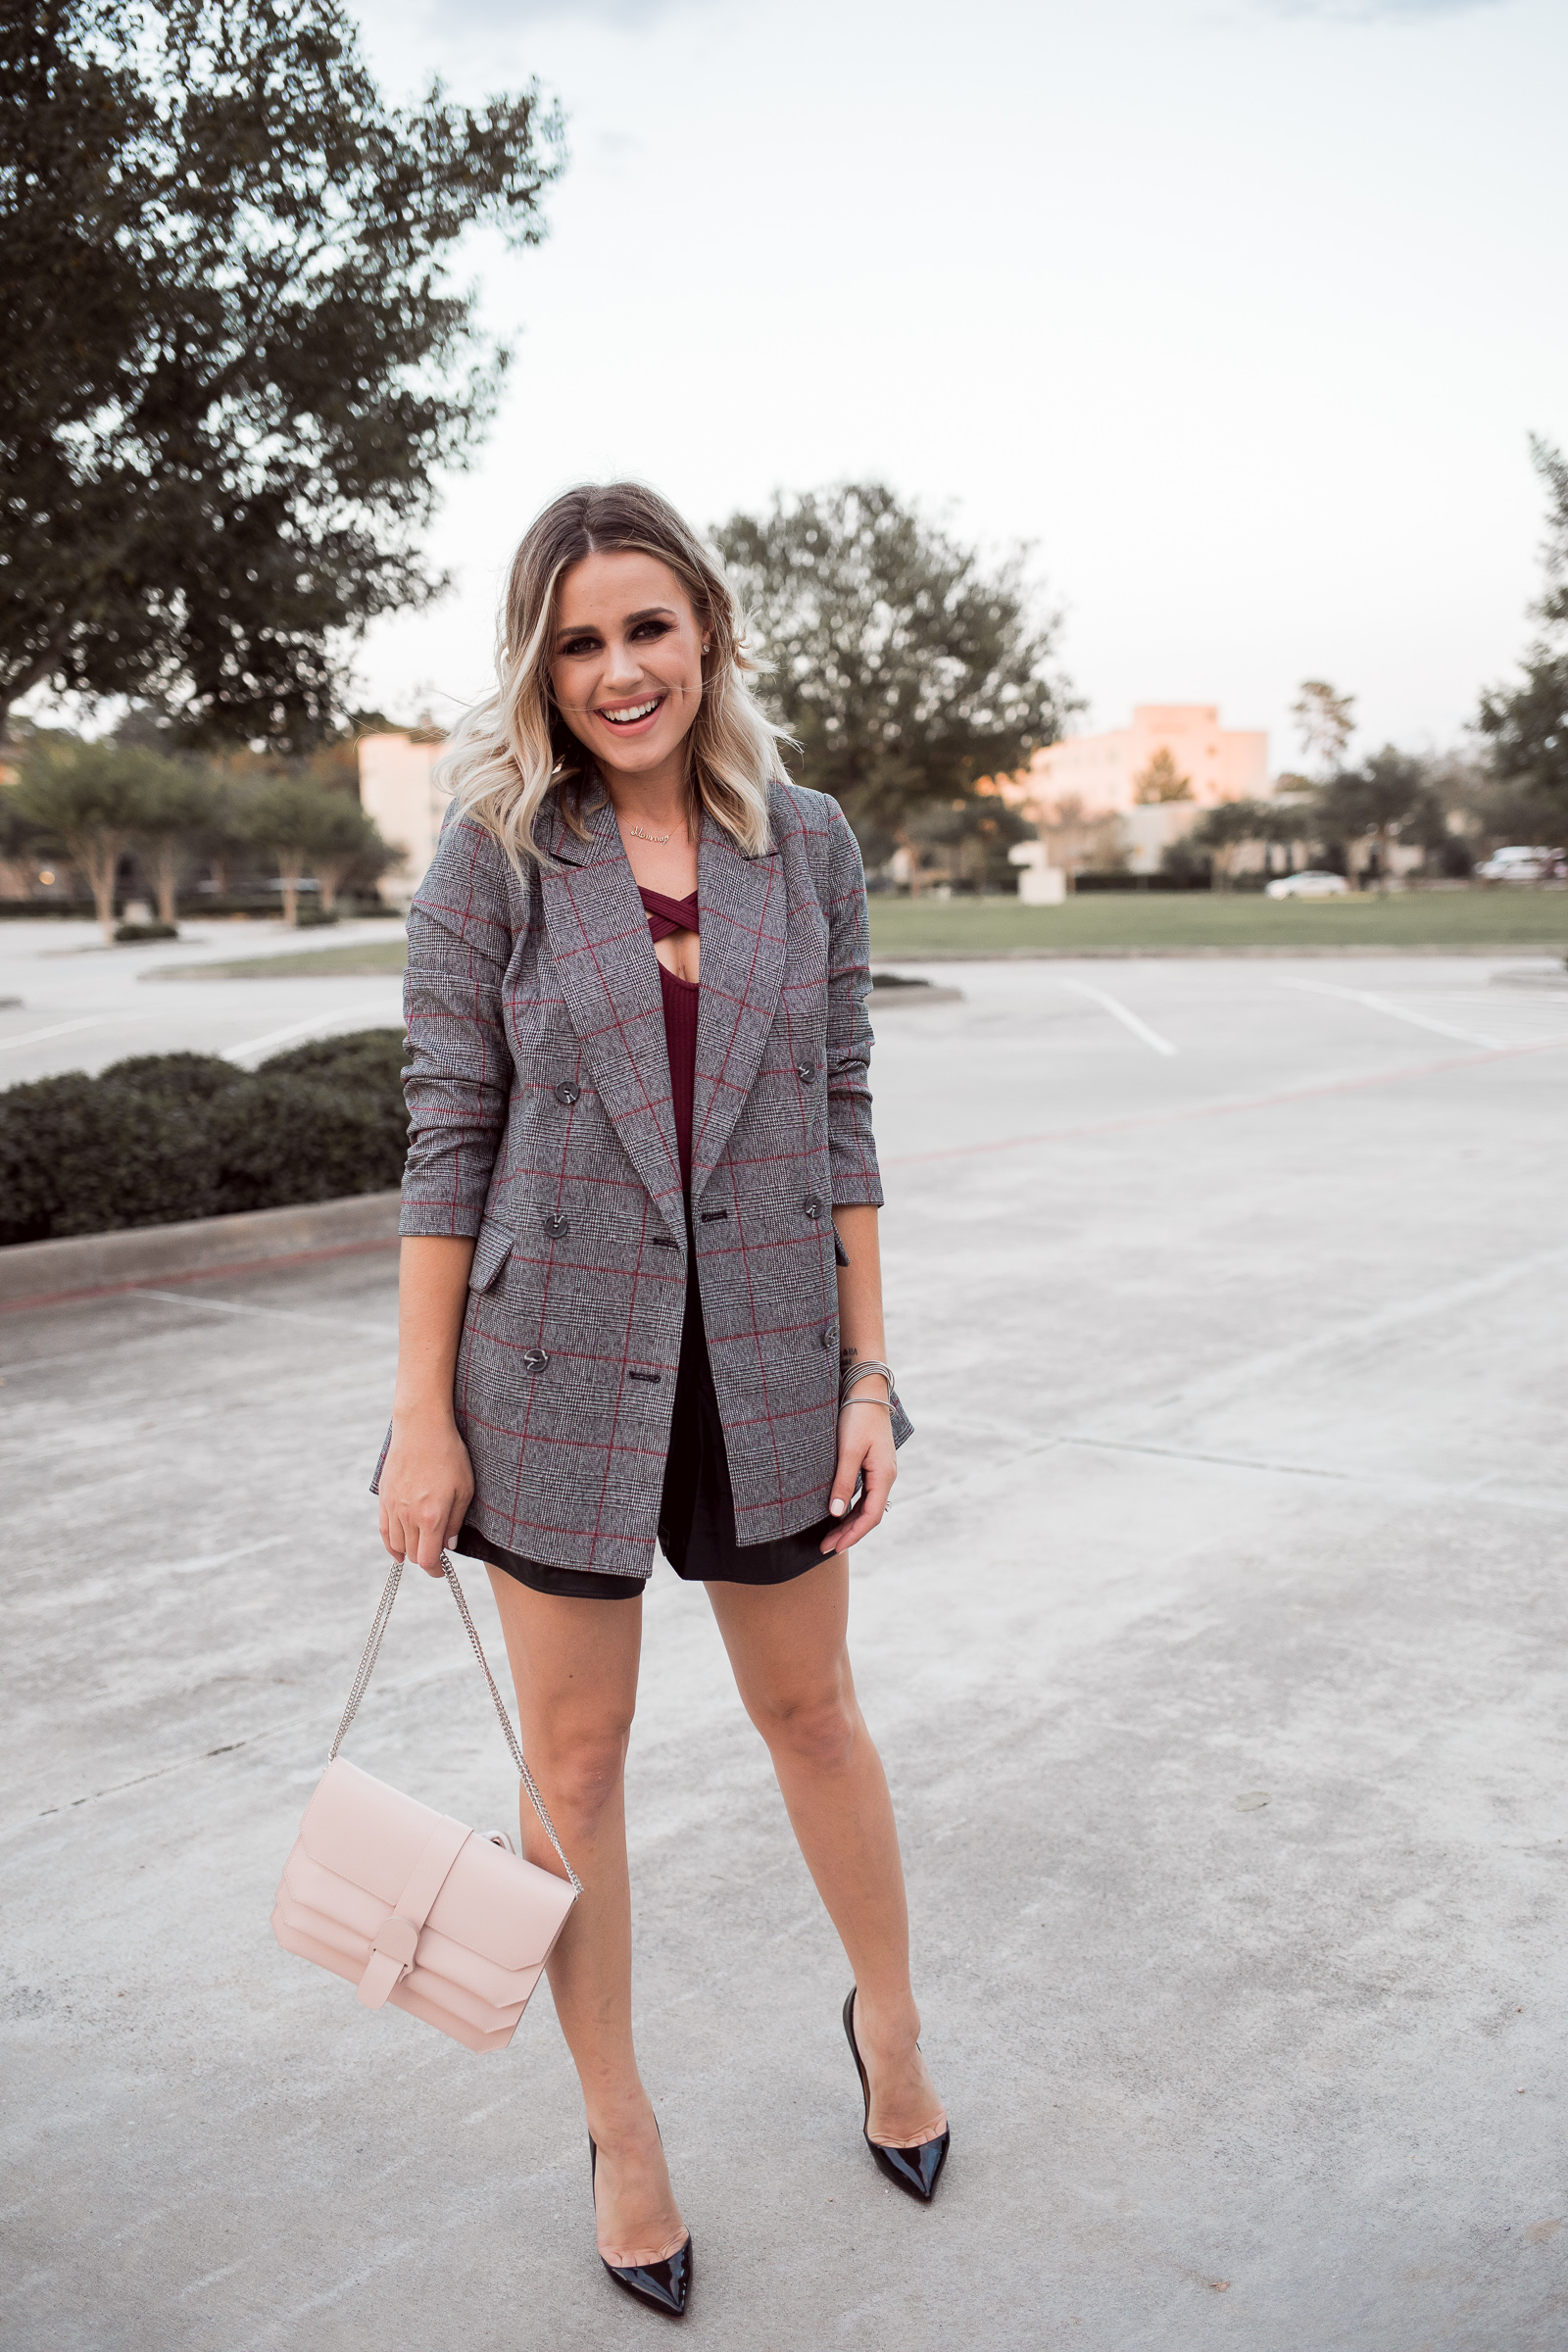 Houston Fashion blogger Uptown with Elly Brown wears a faux leather shorts with a plaid blazer